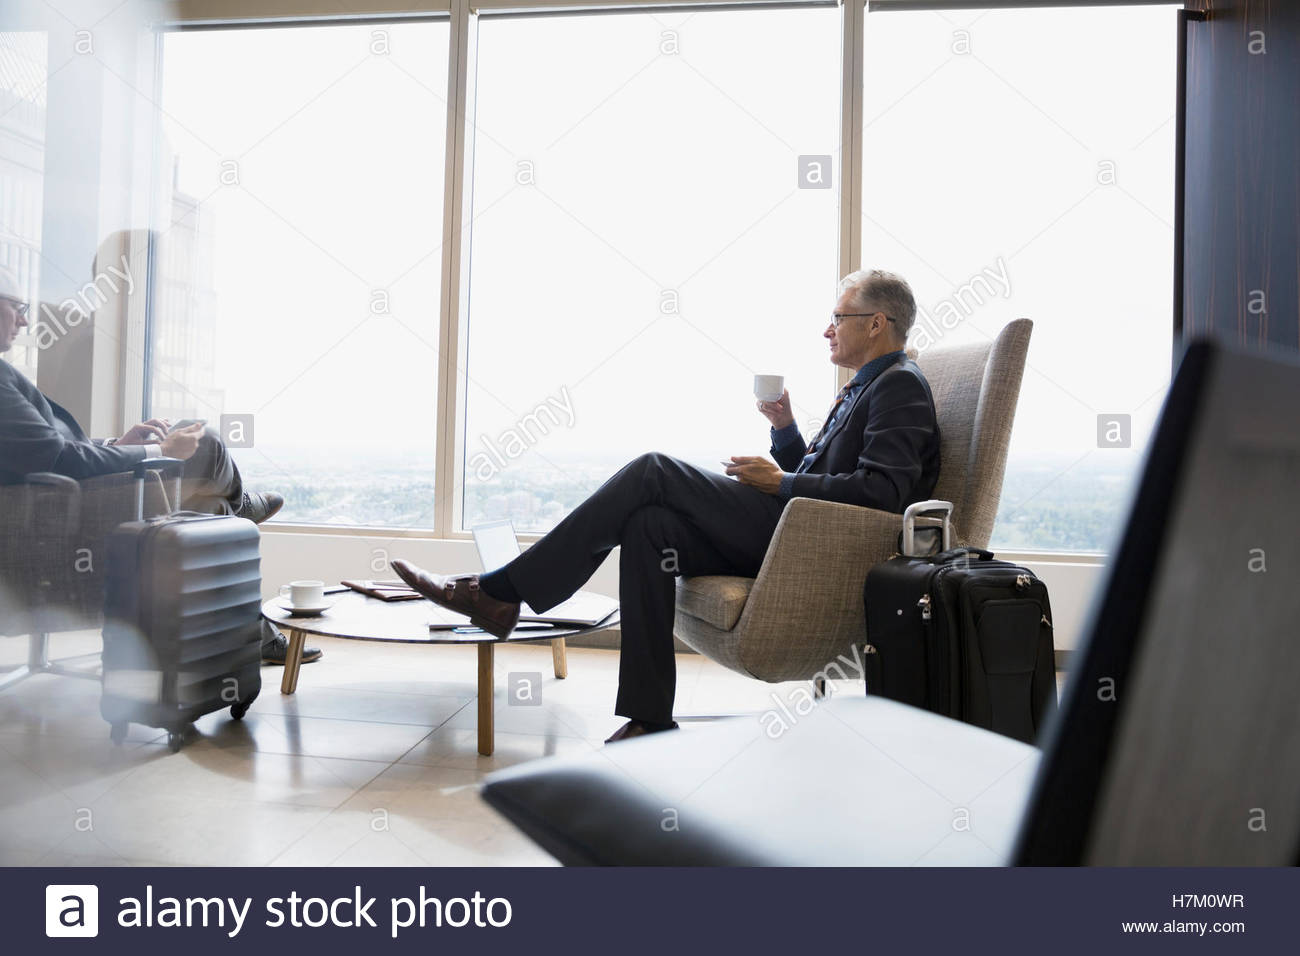 Businessman with luggage drinking coffee in airport lounge - Stock Image